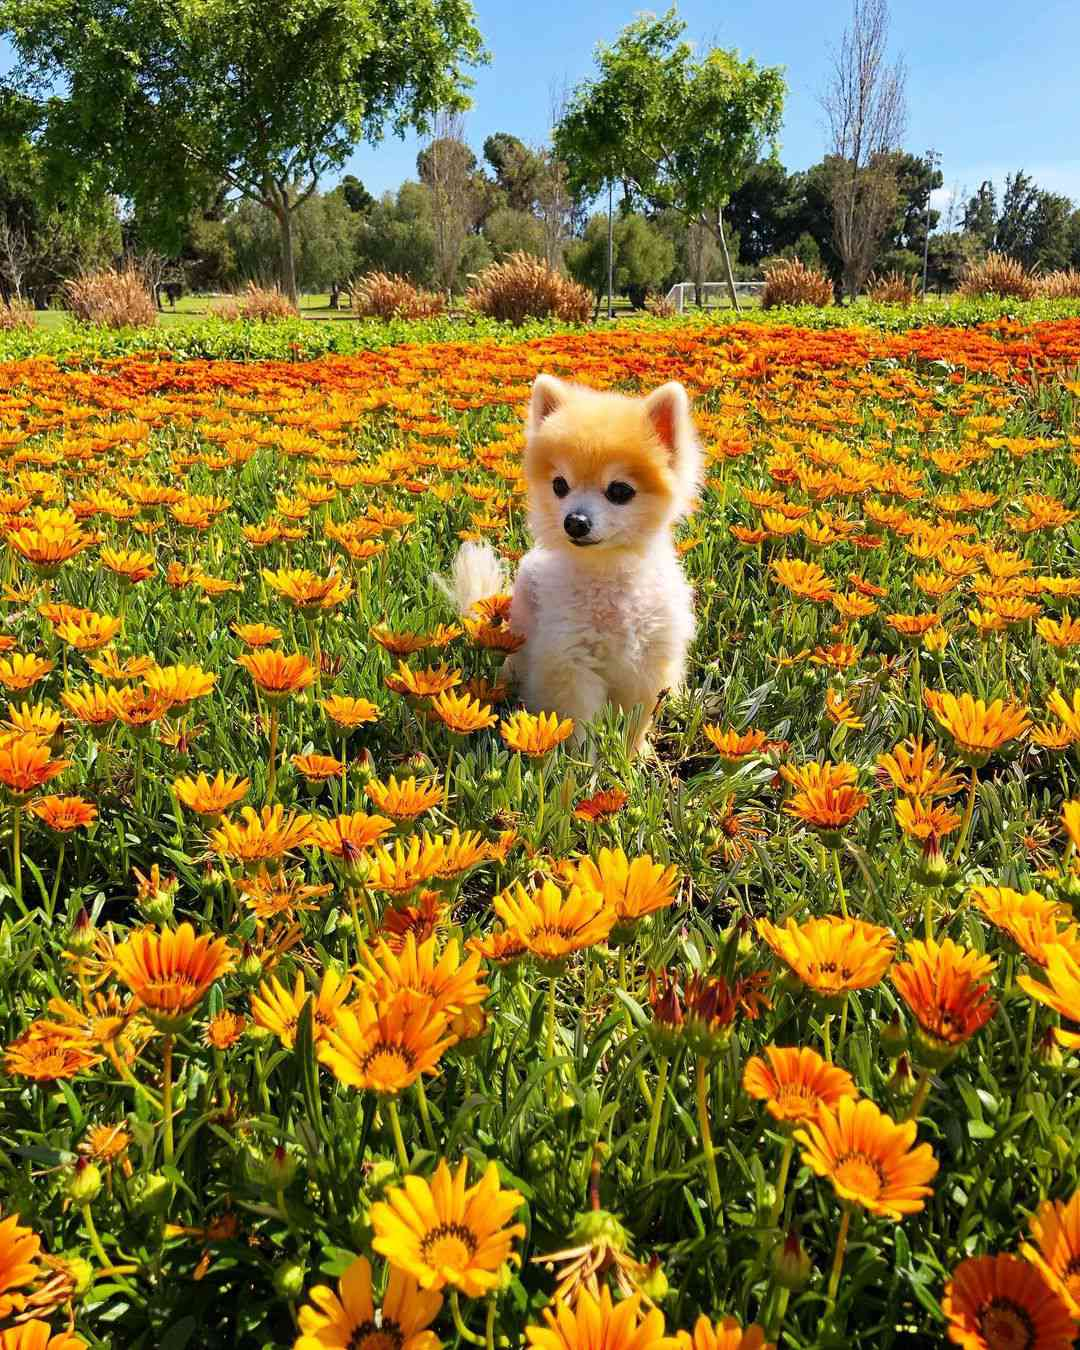 A small, white pomeranian dog standing in a field of bright yellow flowers.